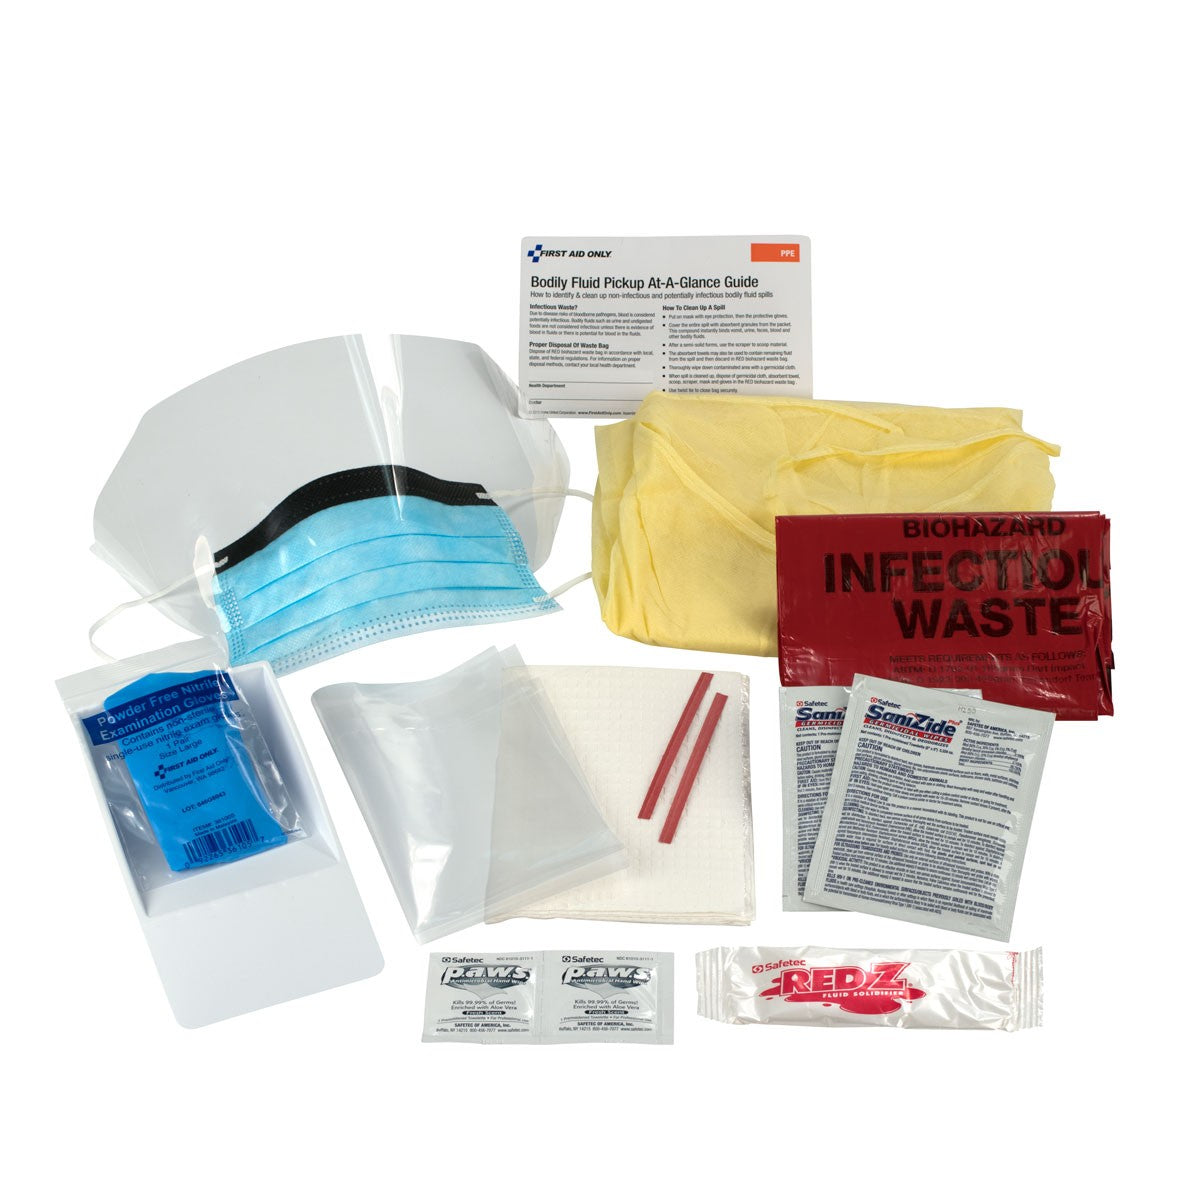 BBP Spill Clean Up Kit, Bodily Fluid Clean Up Pack, 16 Pc - Disposable Tray - BS-FAK-214-P-1-FM